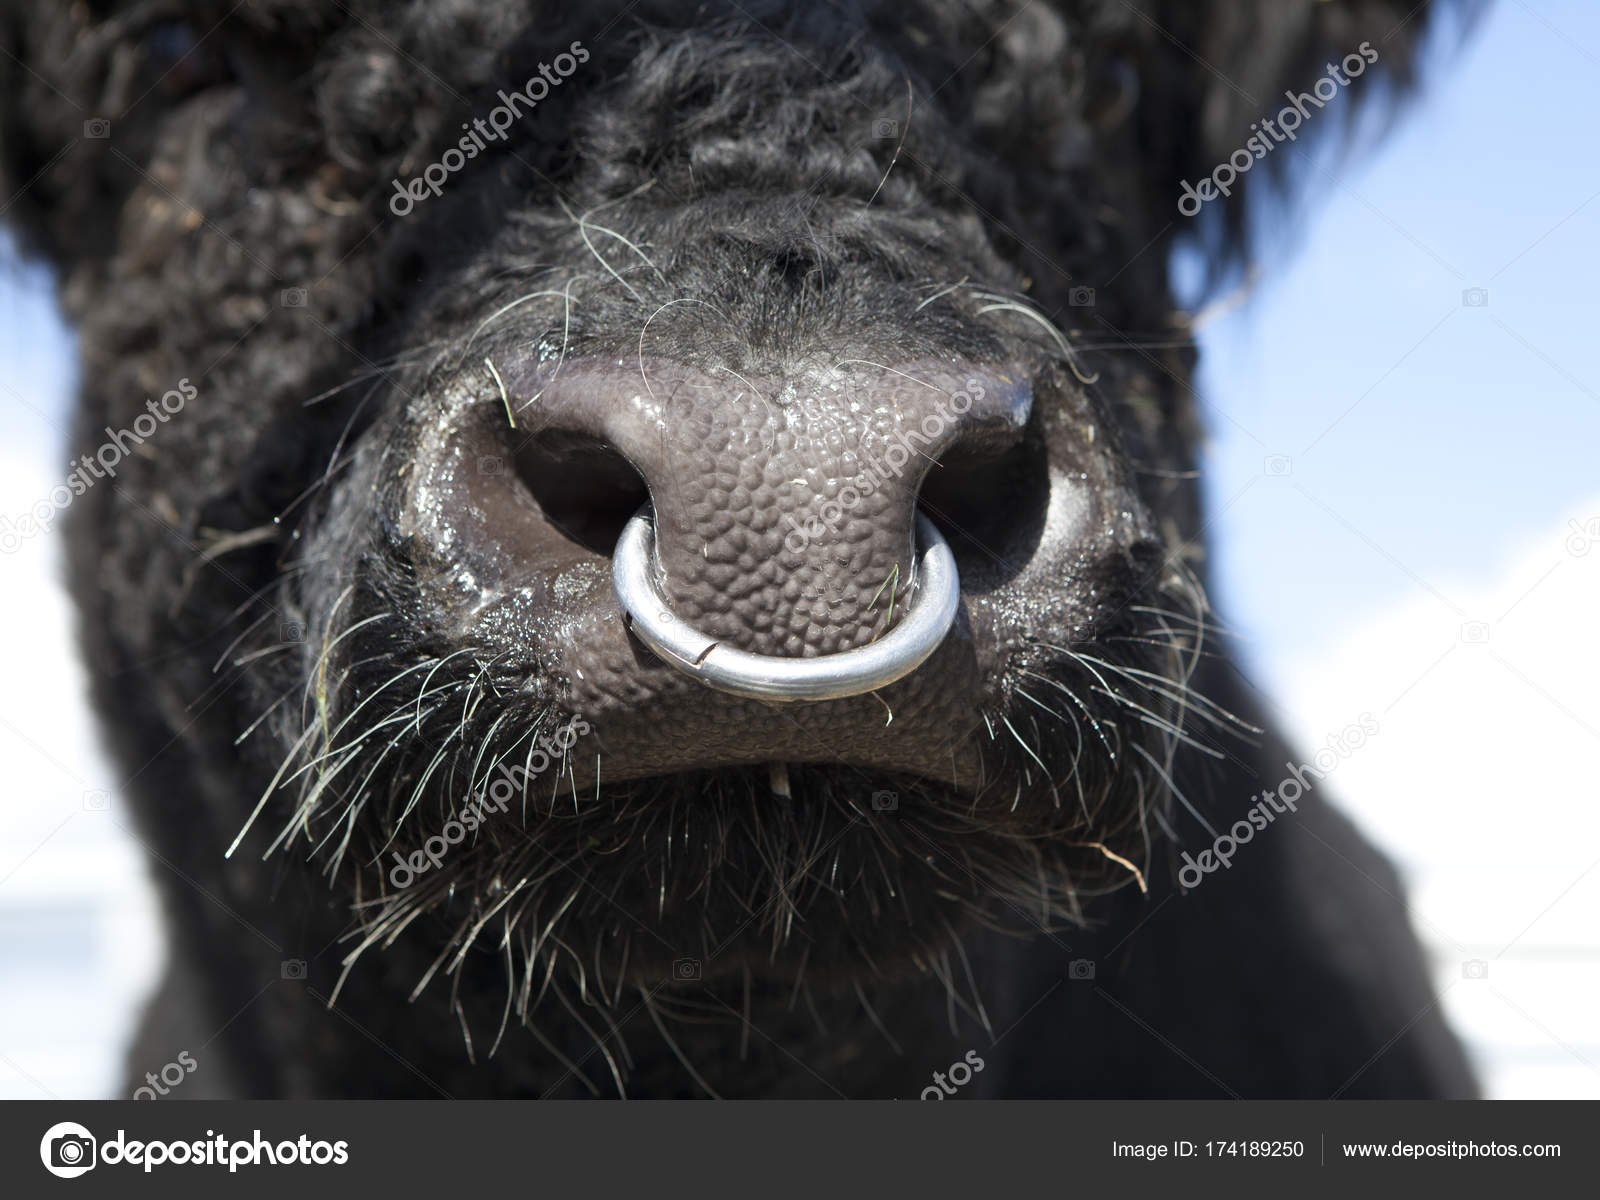 Bull With Nose Ring Stock Photo Purplequeue 174189250